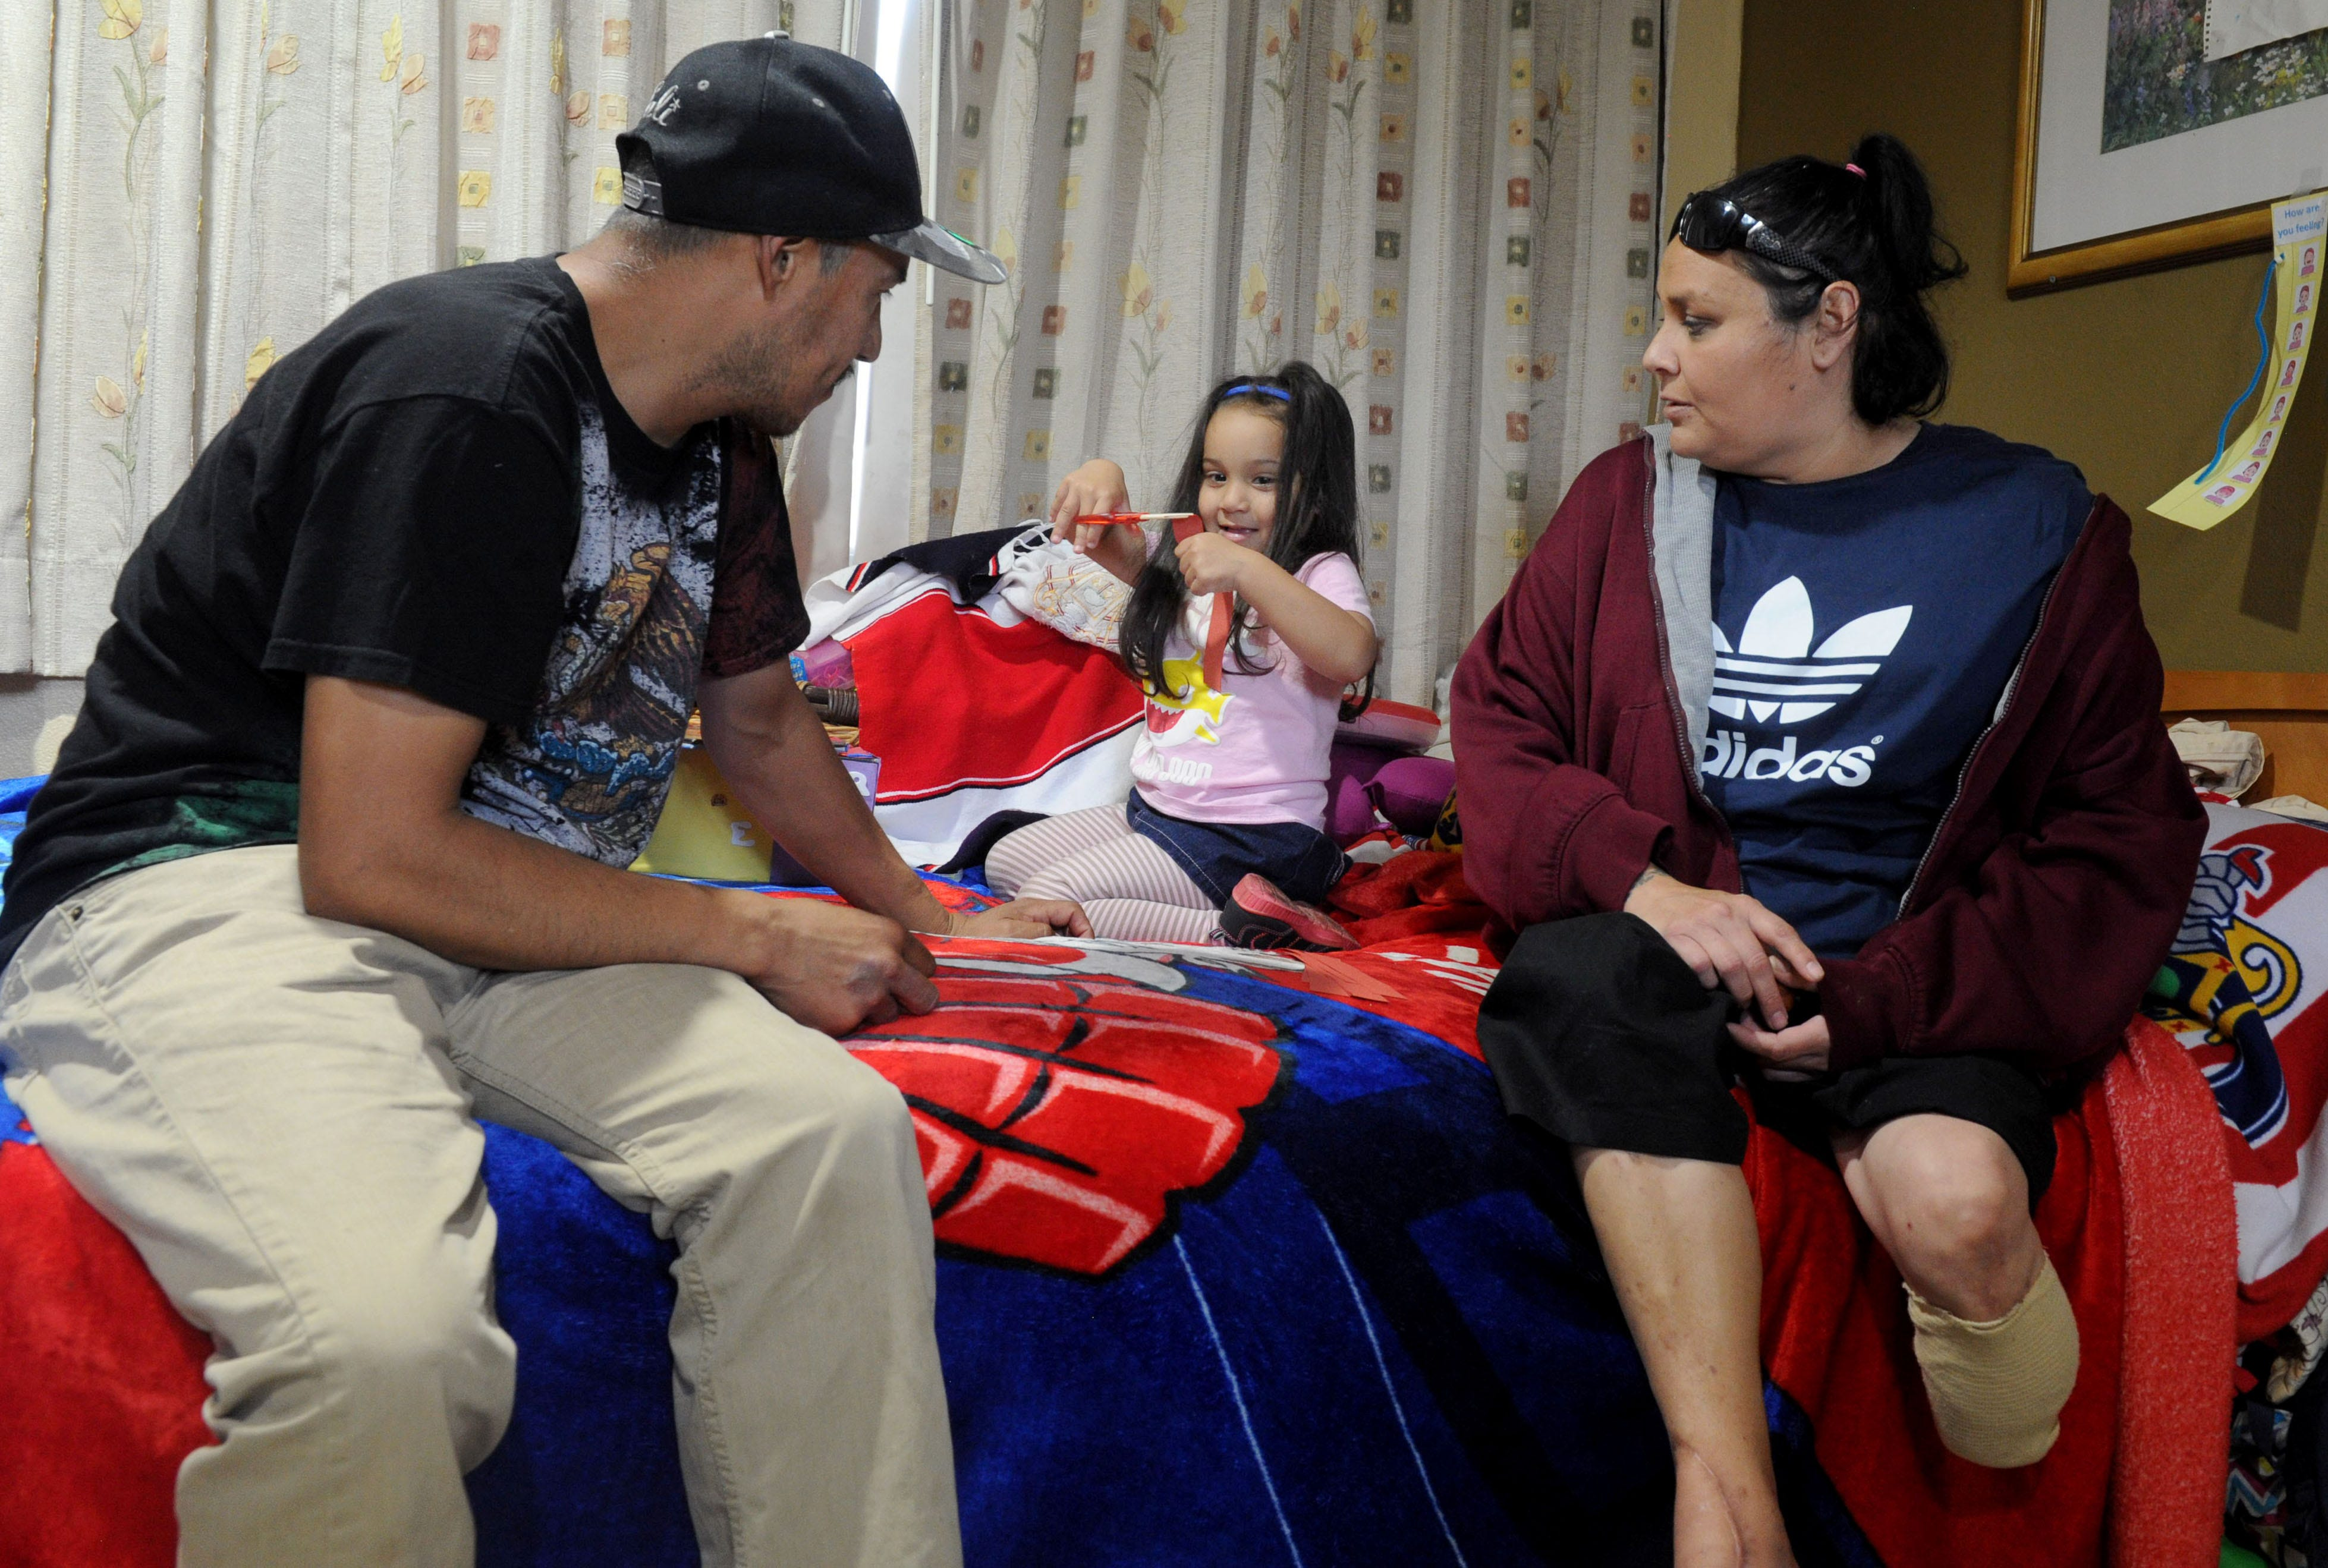 Omar Medina (left), his wife Maria (right) and their children (including Carly, middle) became homeless in August after Maria lost her leg to diabetes and Omar lost his job in the strawberry fields.